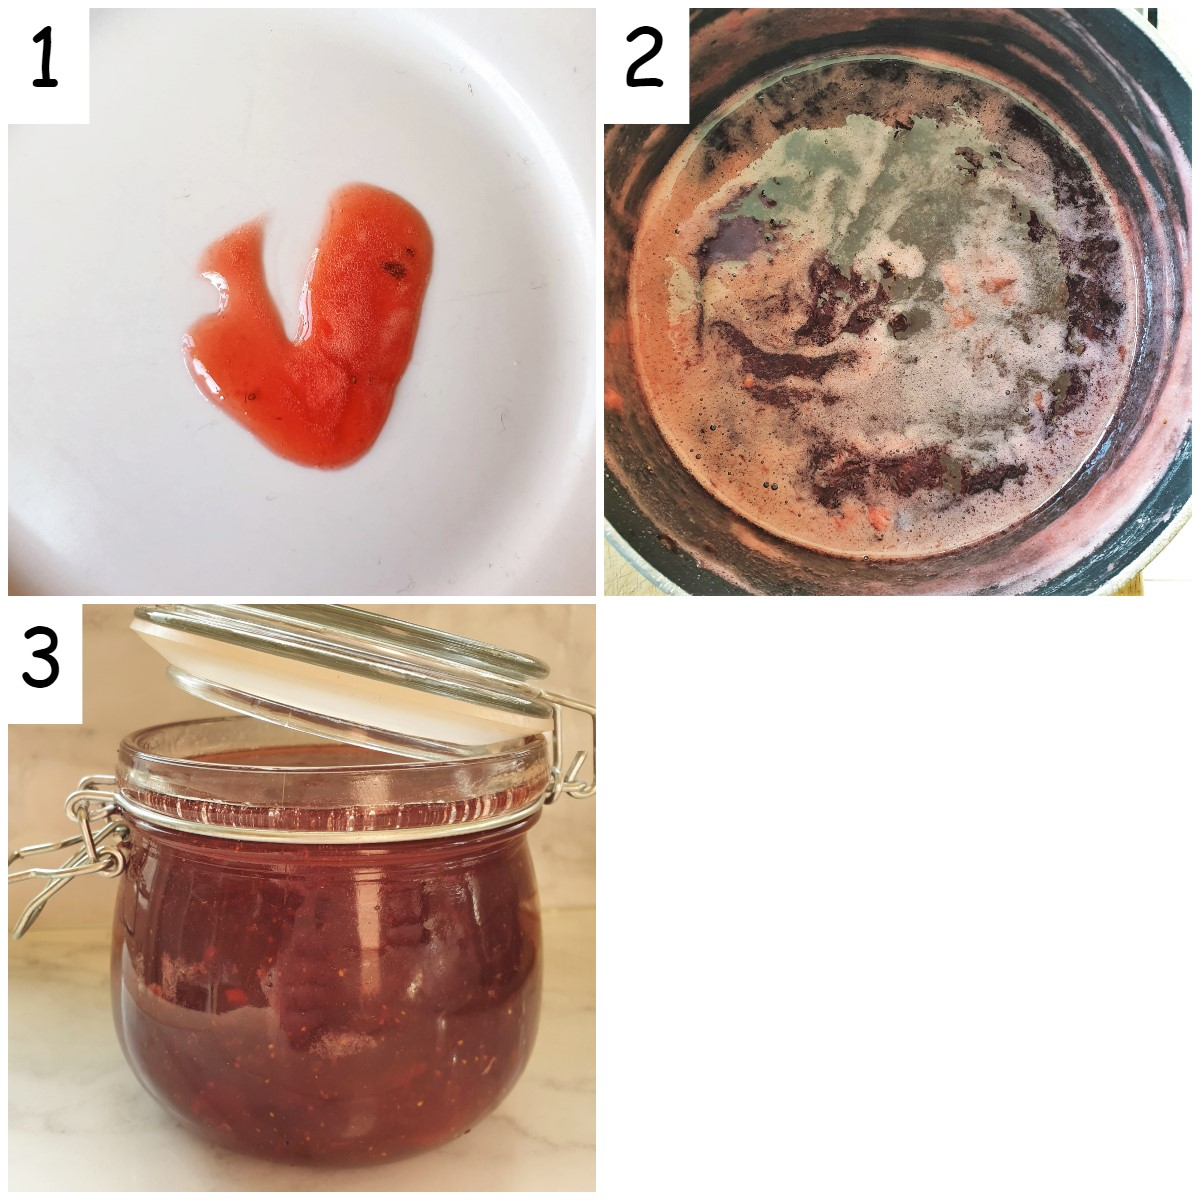 A collage of 3 images showing strawberry jam being boiled and tested for thickness.